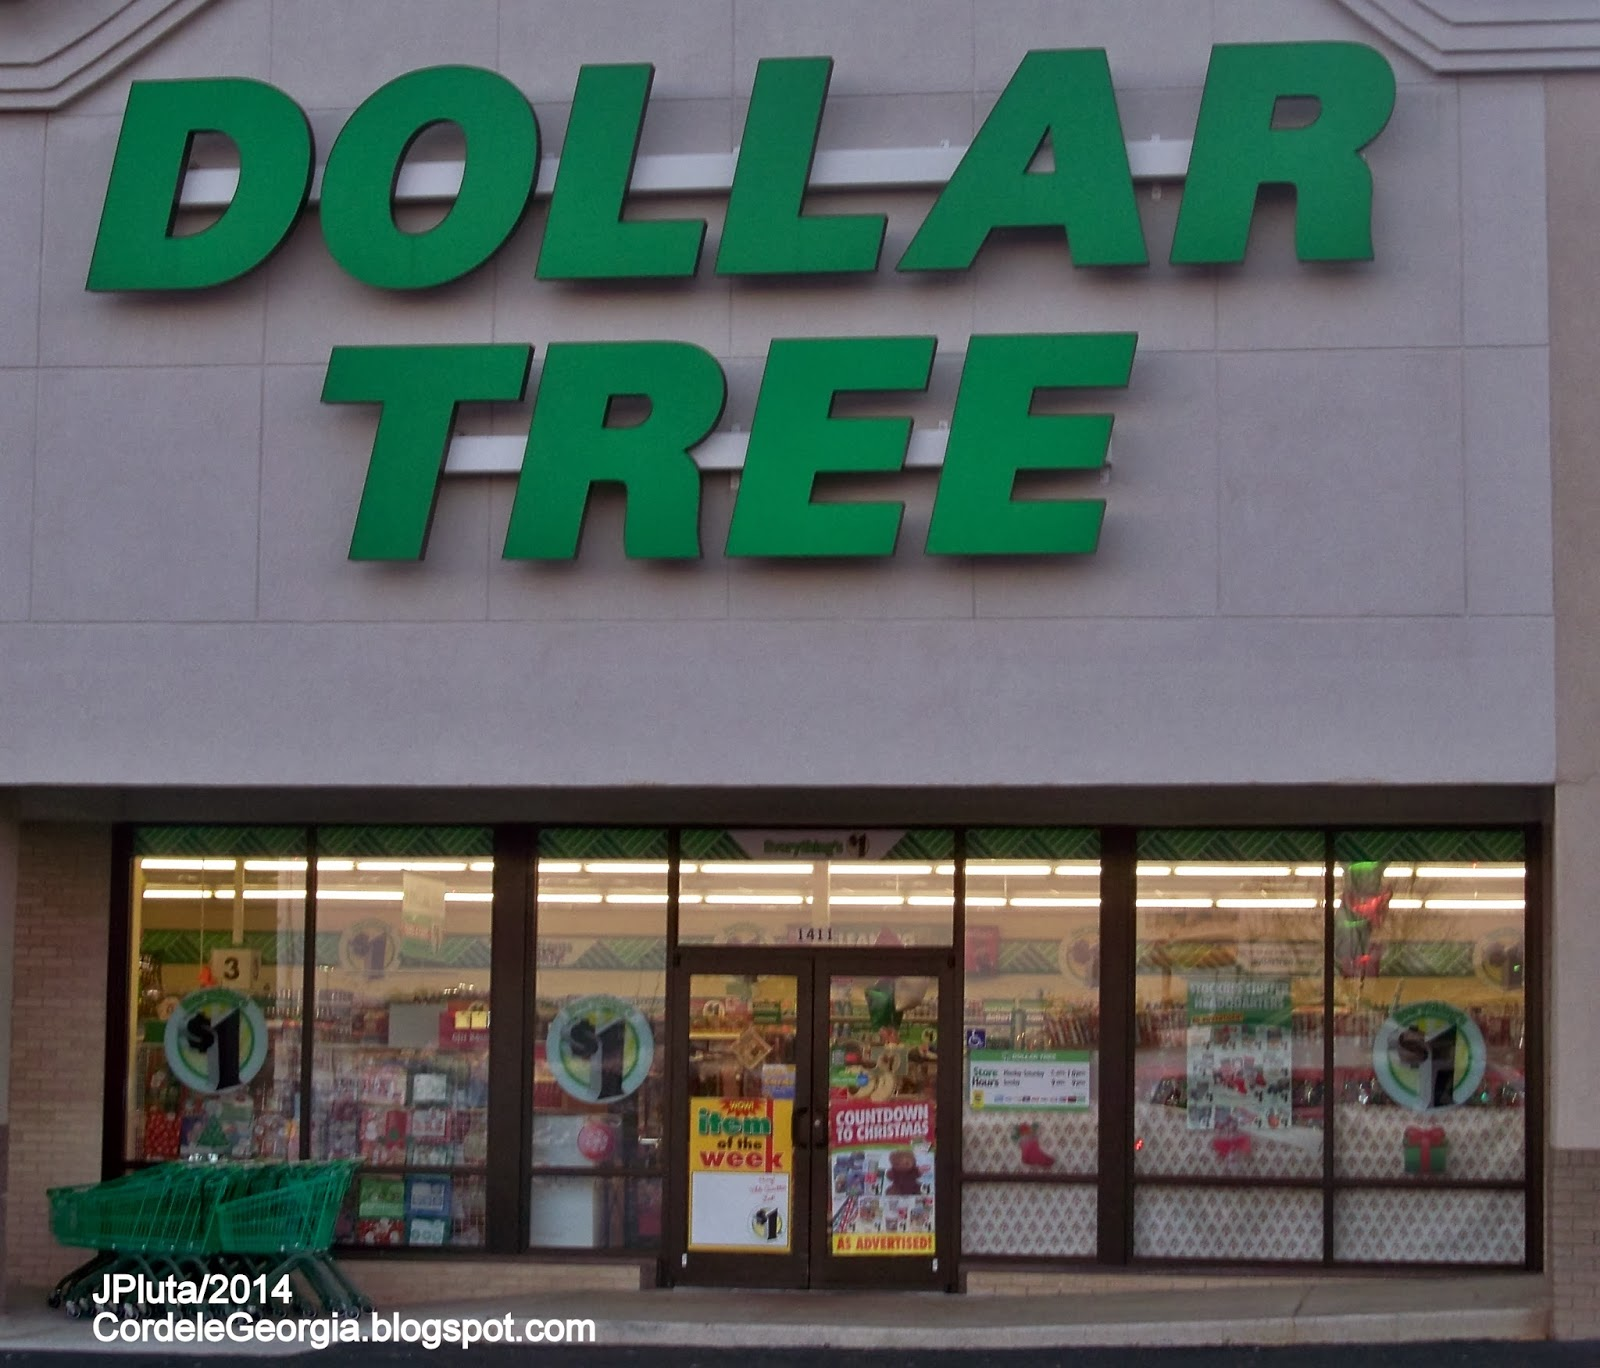 Dollar Tree Store Locator Inc: CORDELE GEORGIA Crisp Watermelon Restaurant Attorney Bank